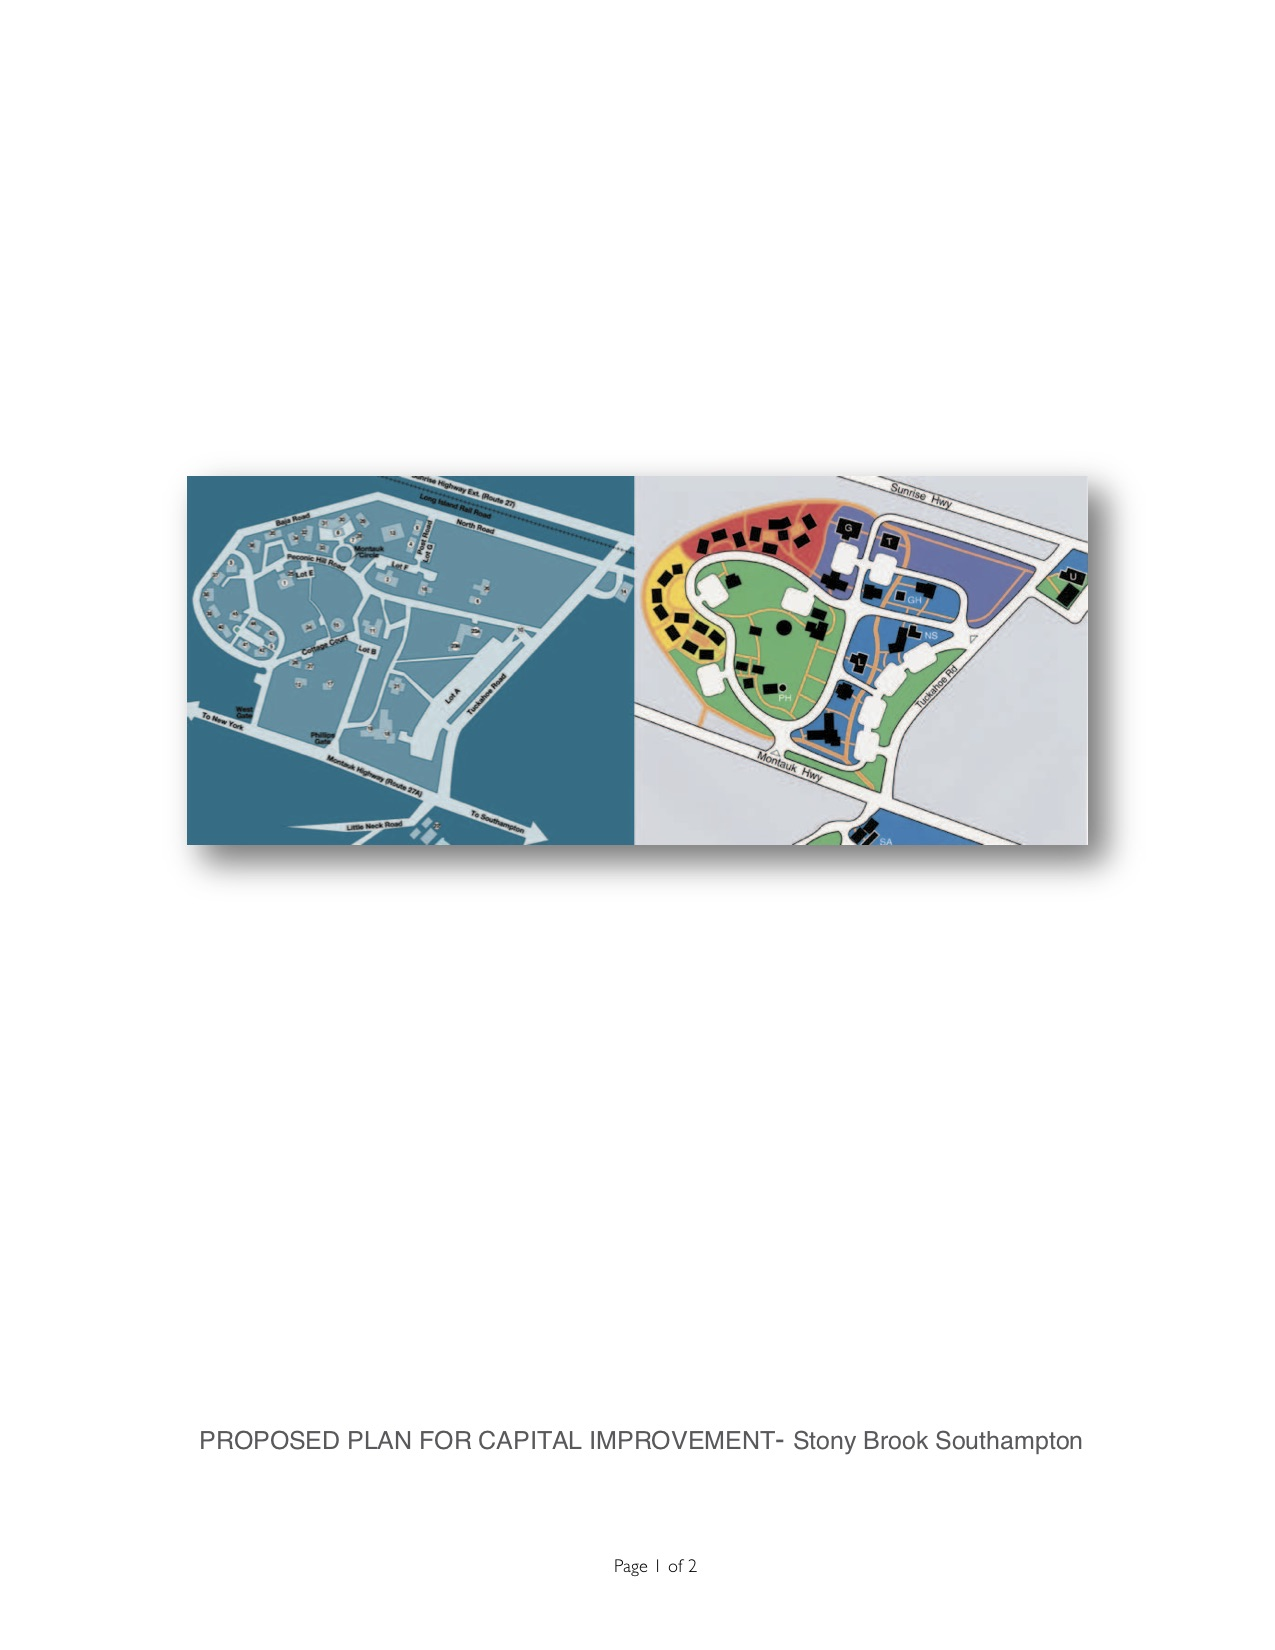 Unsolicited proposal: New master Site Plan for Southampton College / Stony Brook Southampton